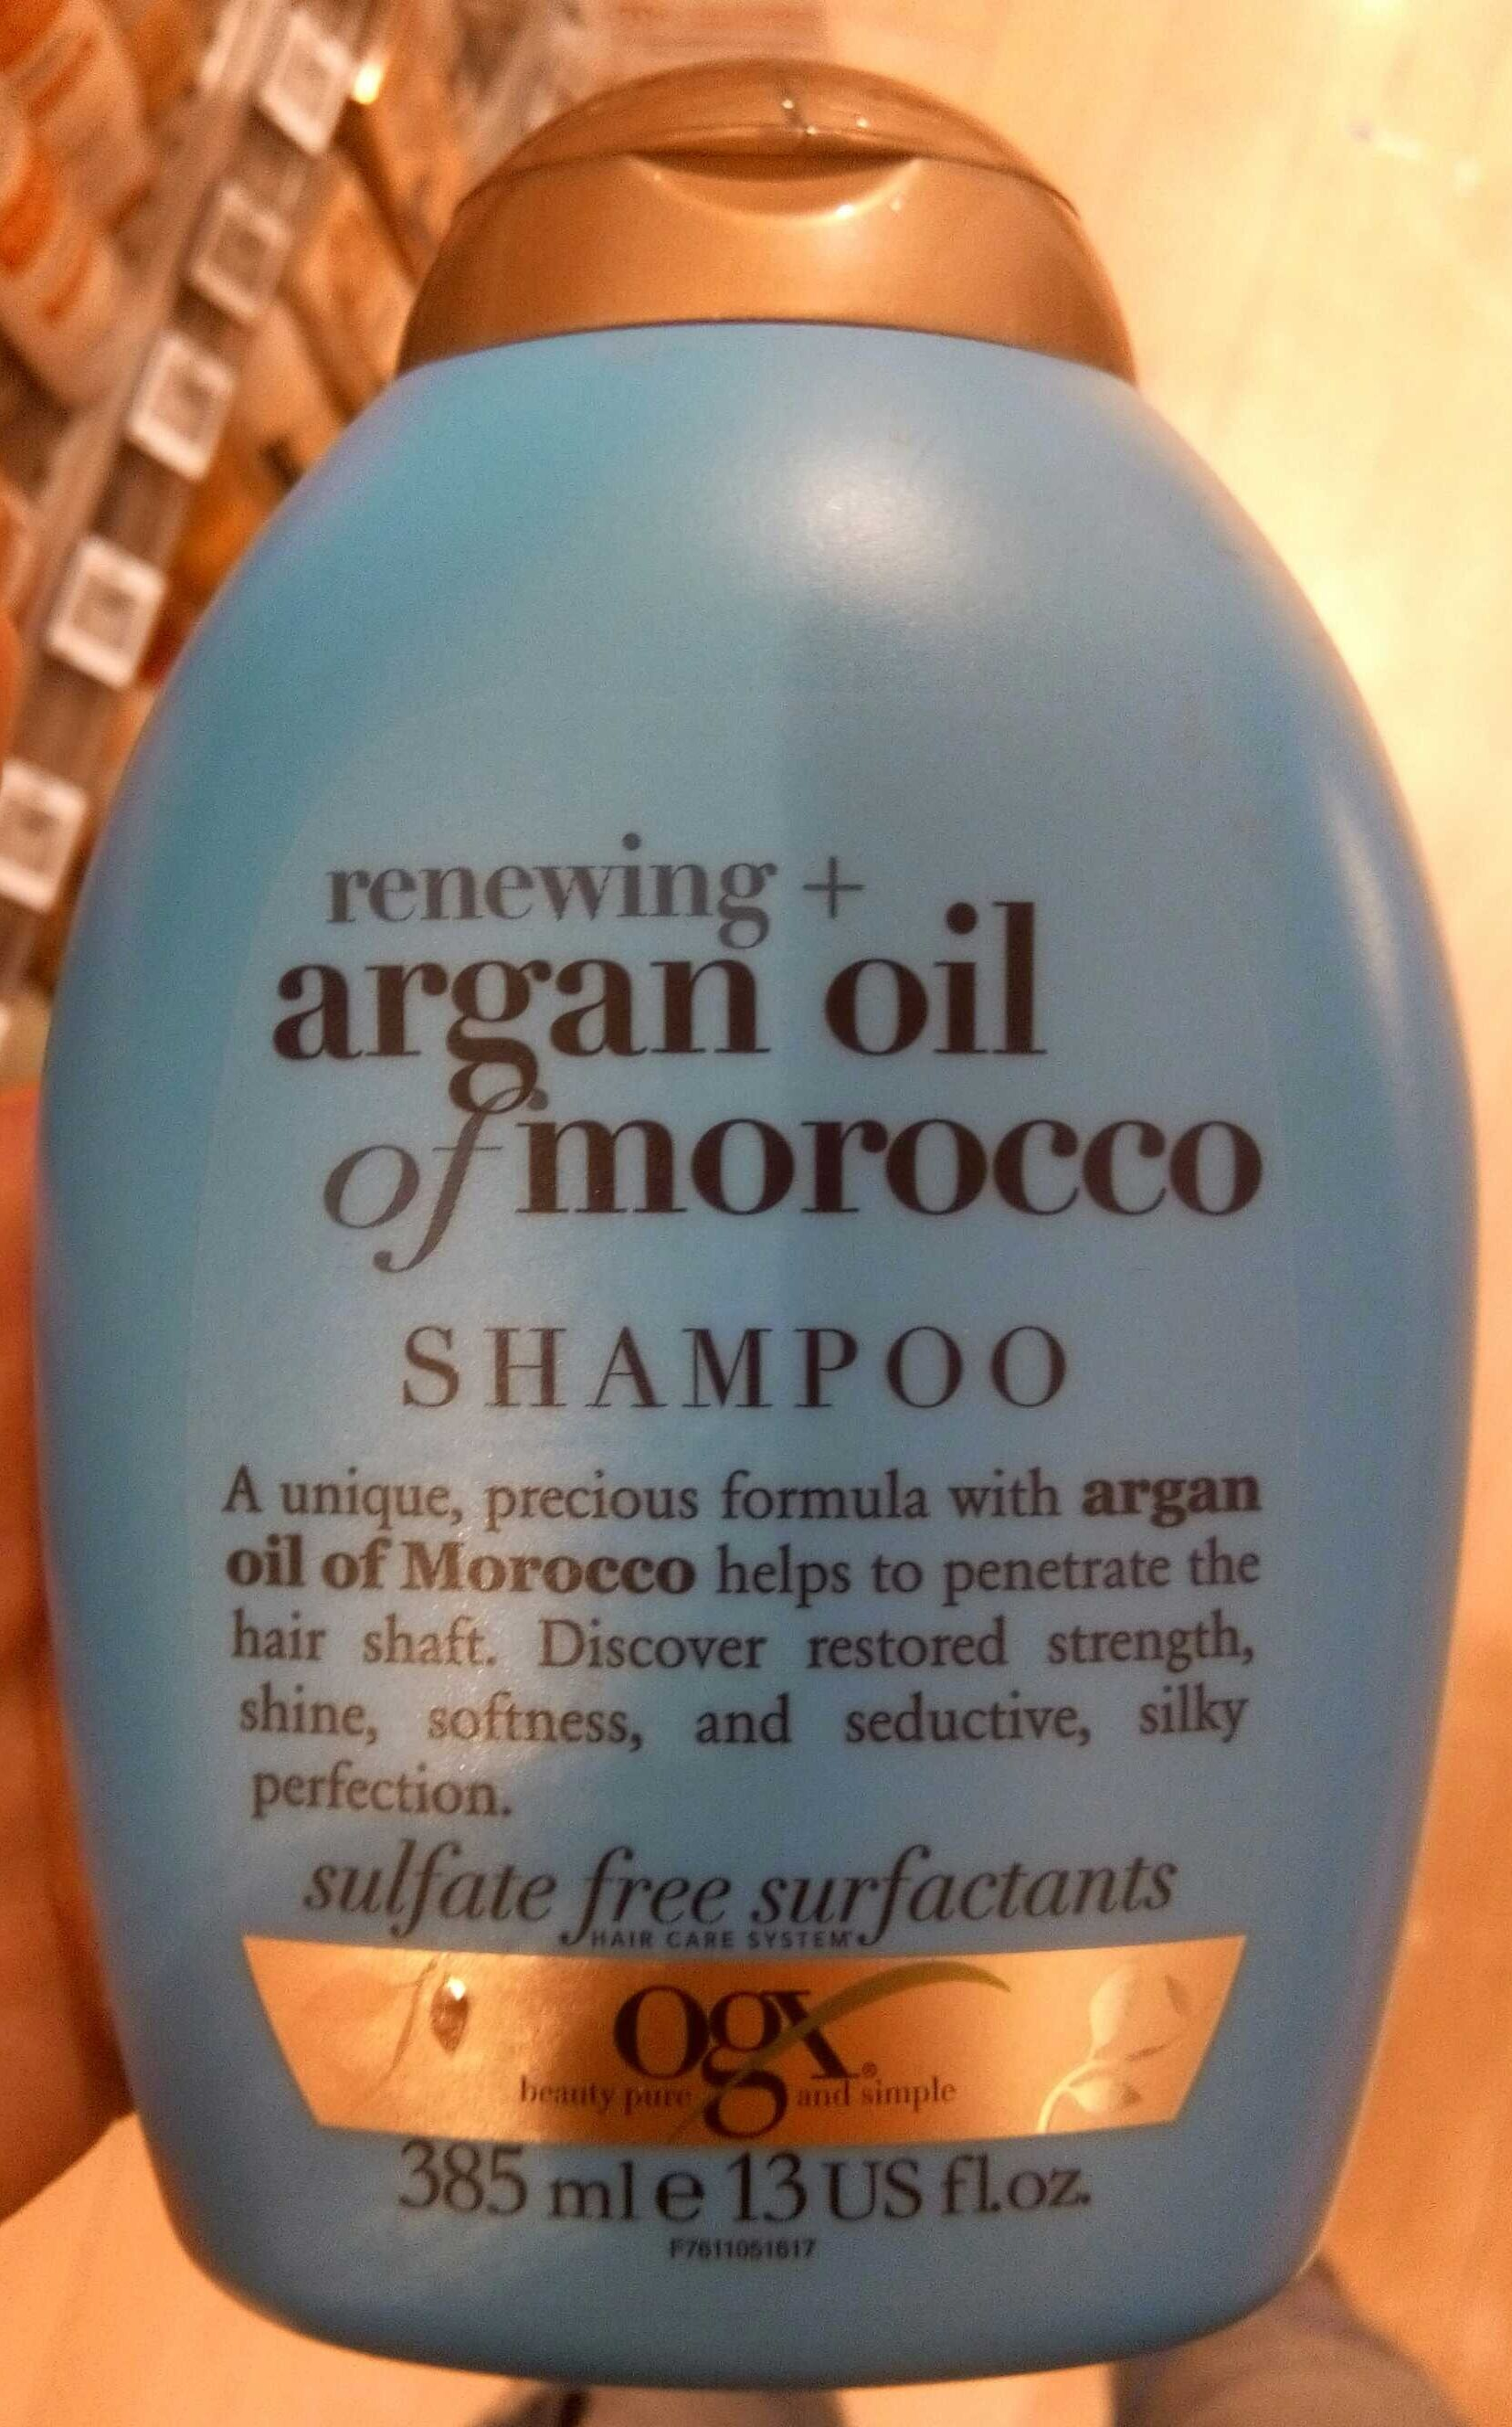 Argan oil of morocco Shampoo - Product